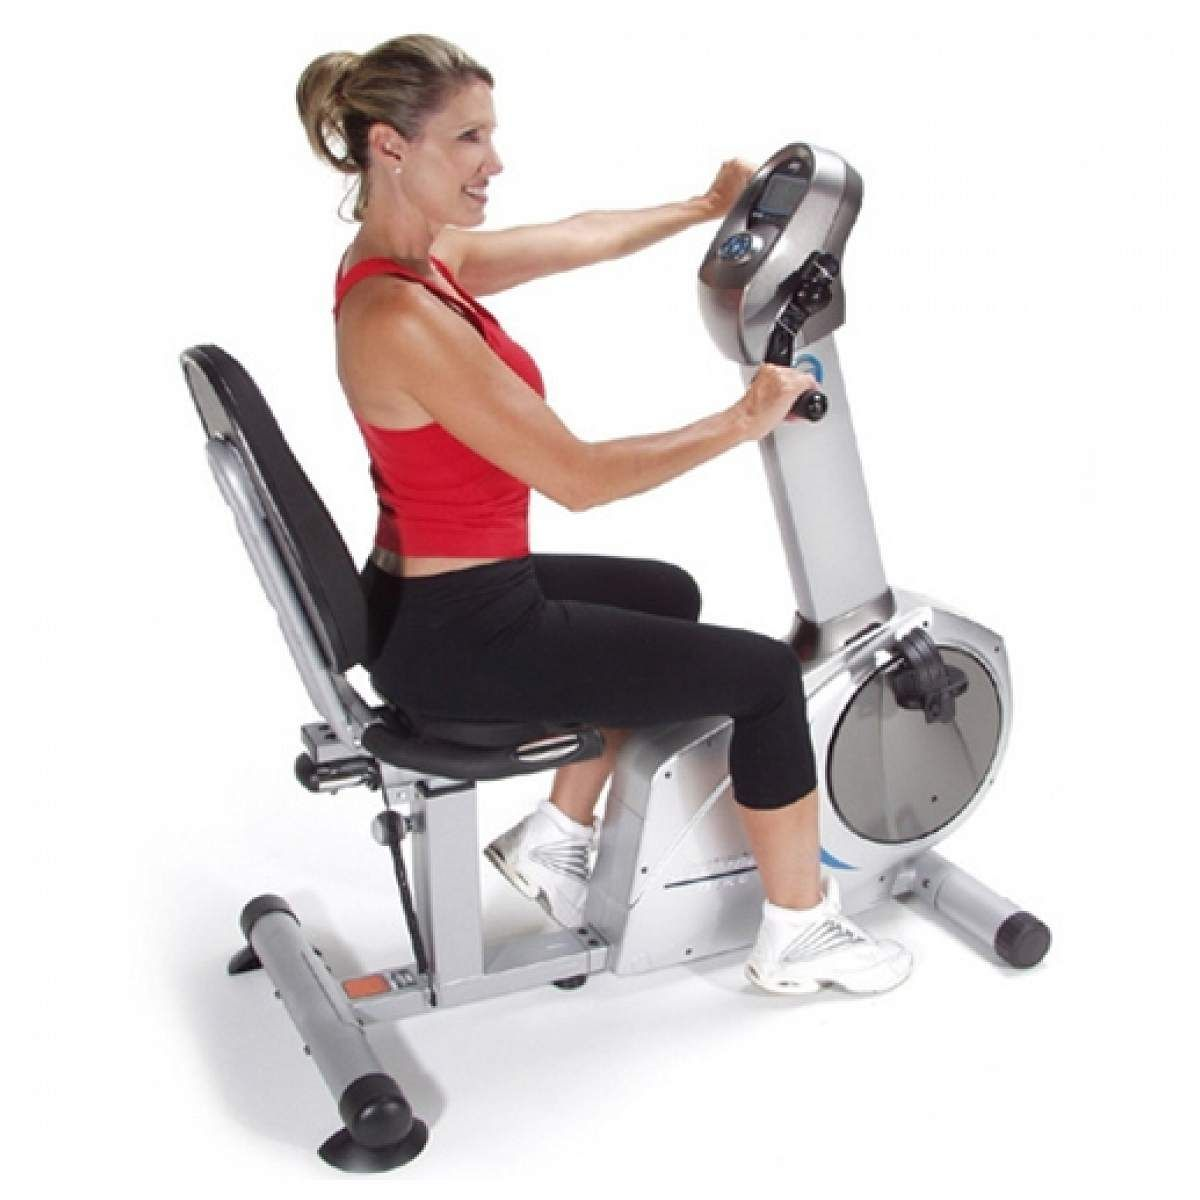 Stamina Elite Total Body - Best Exercise Bikes for Knee Replacement Rehab